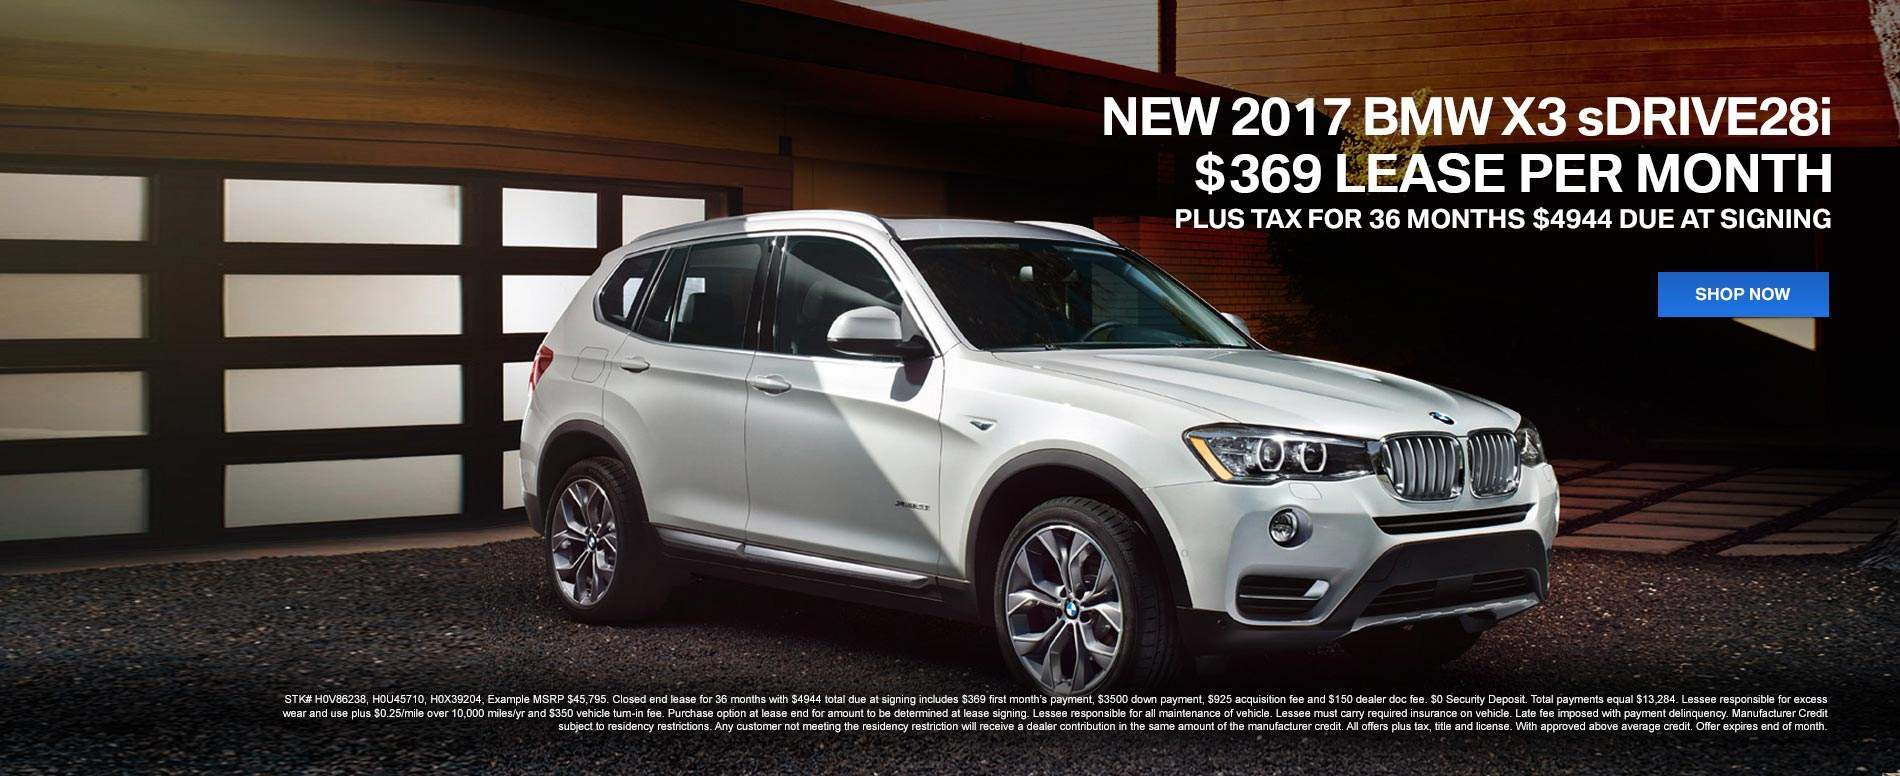 2017 BMW X3 sDrive28i